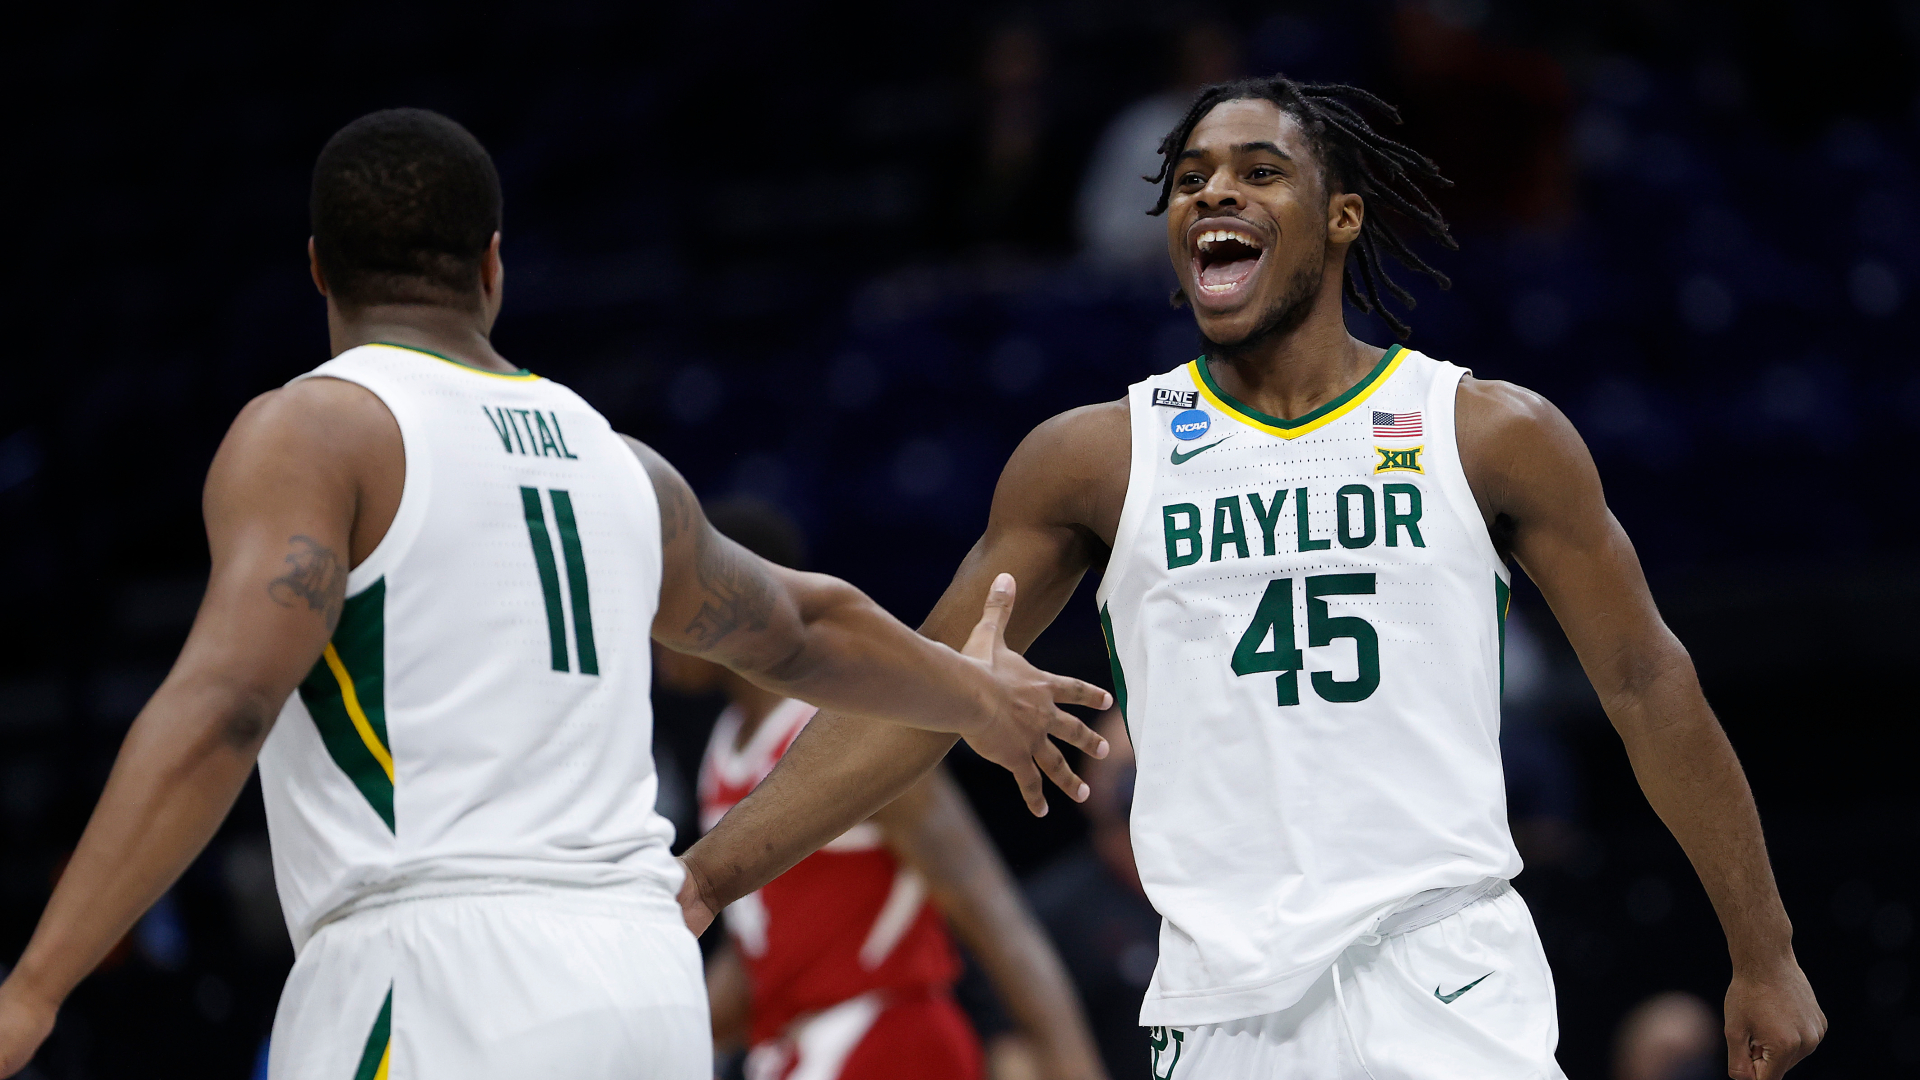 Who is in the Final Four? Teams, odds & more to know for 2021 March Madness semifinal games